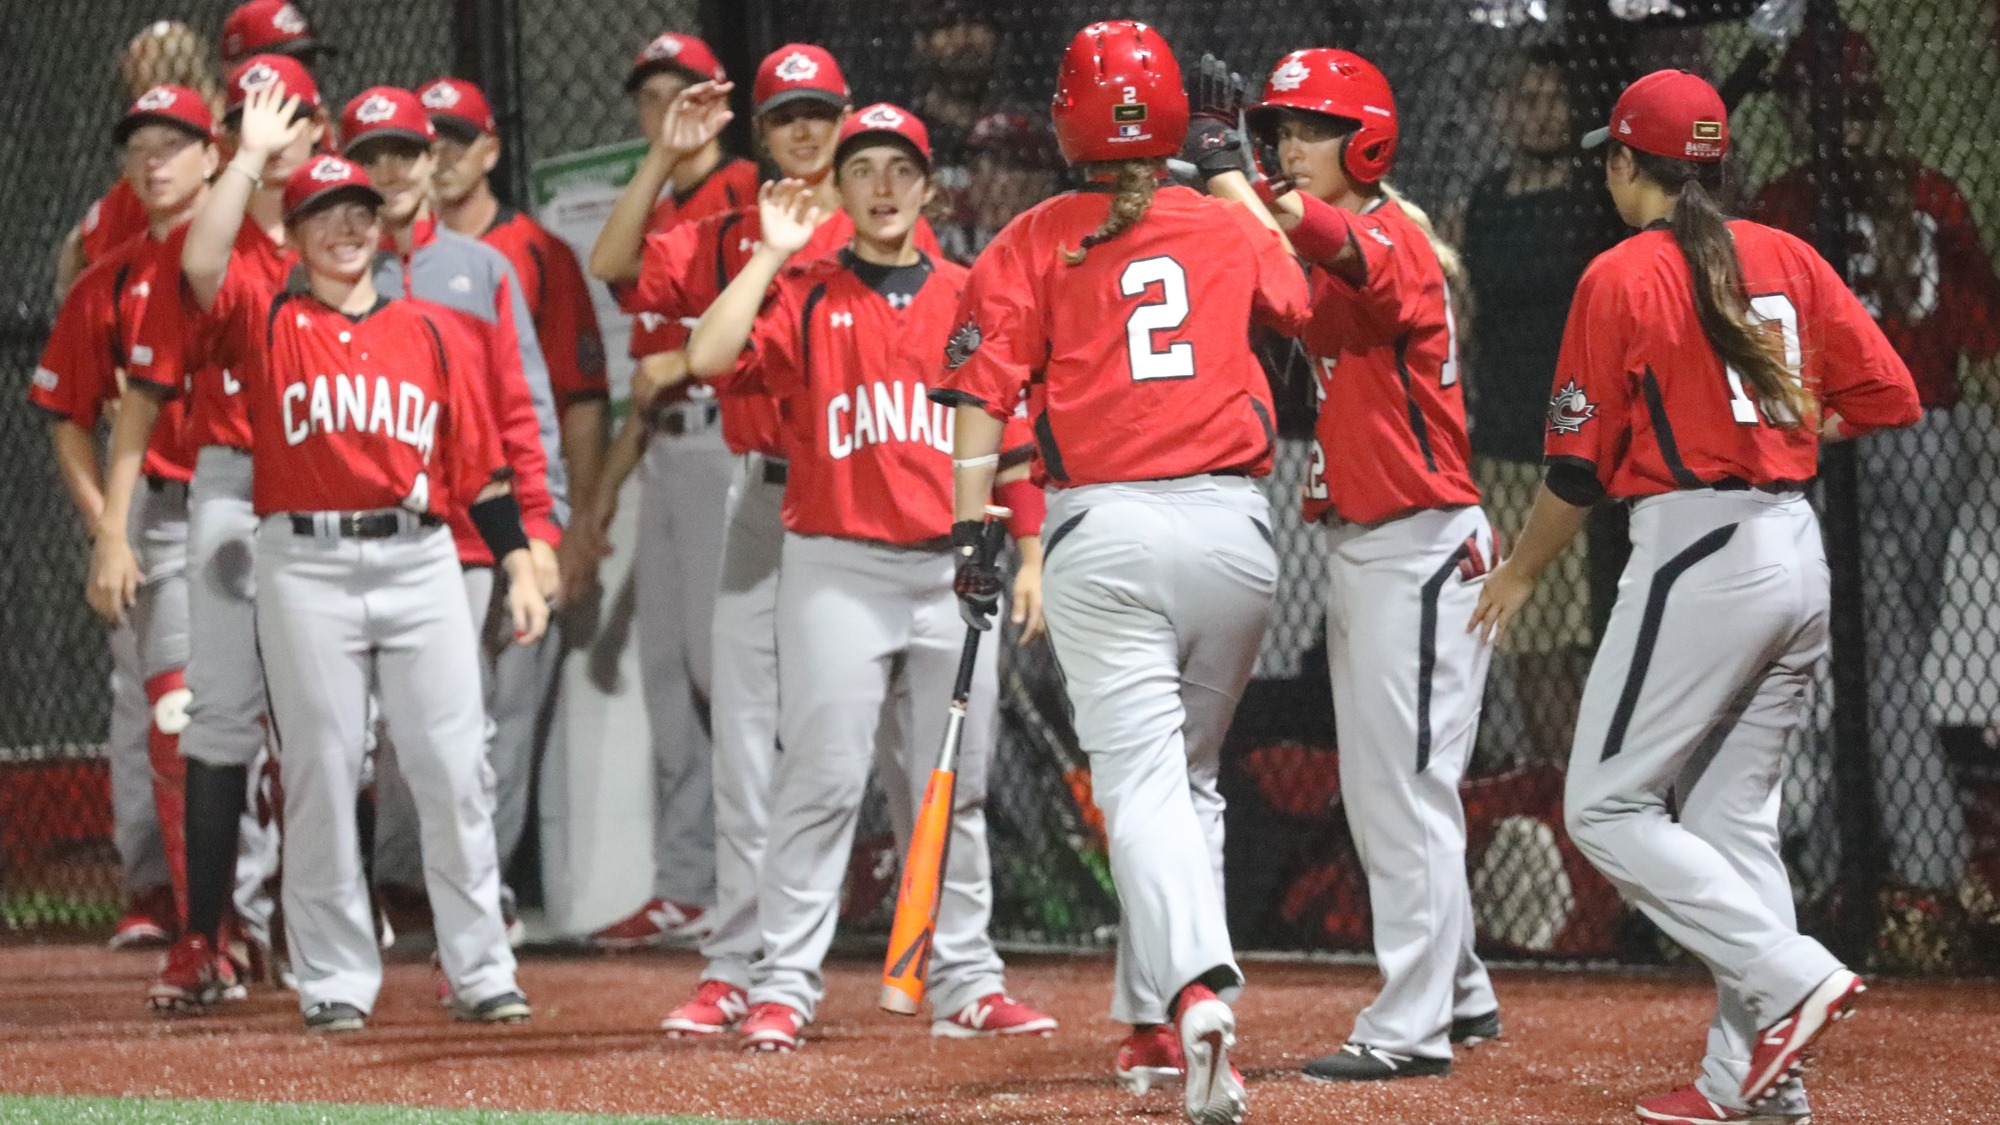 Canada beat Australia after a hard fought battle and is in sole possession of second place in group B